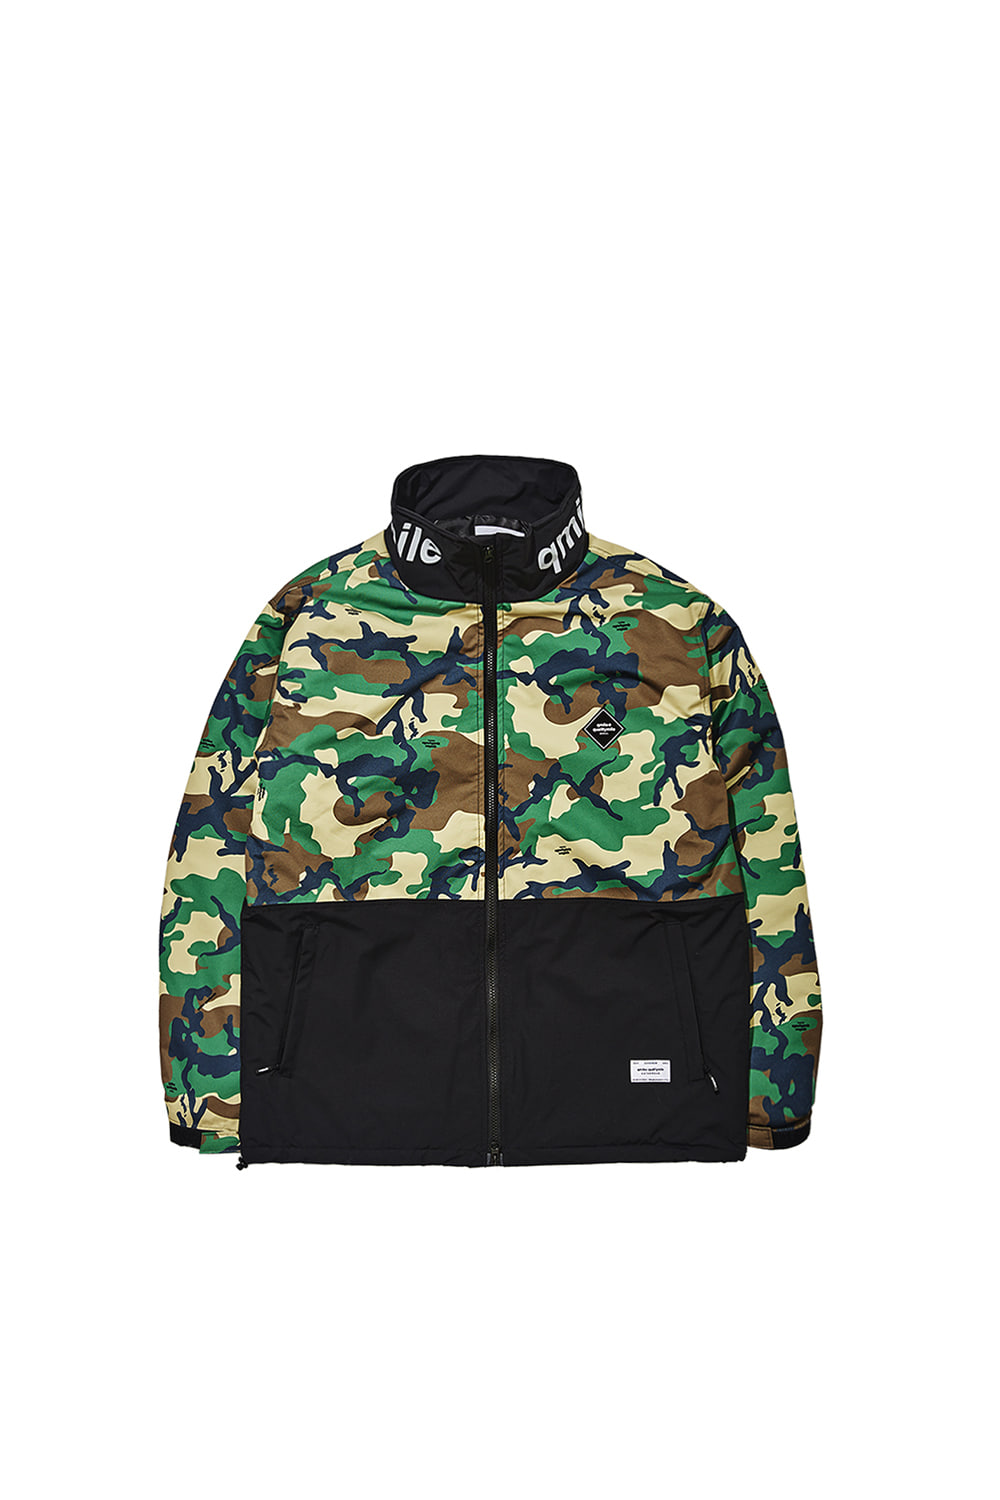 HOODLESS JACKET | GREEN CAMOUFLAGE